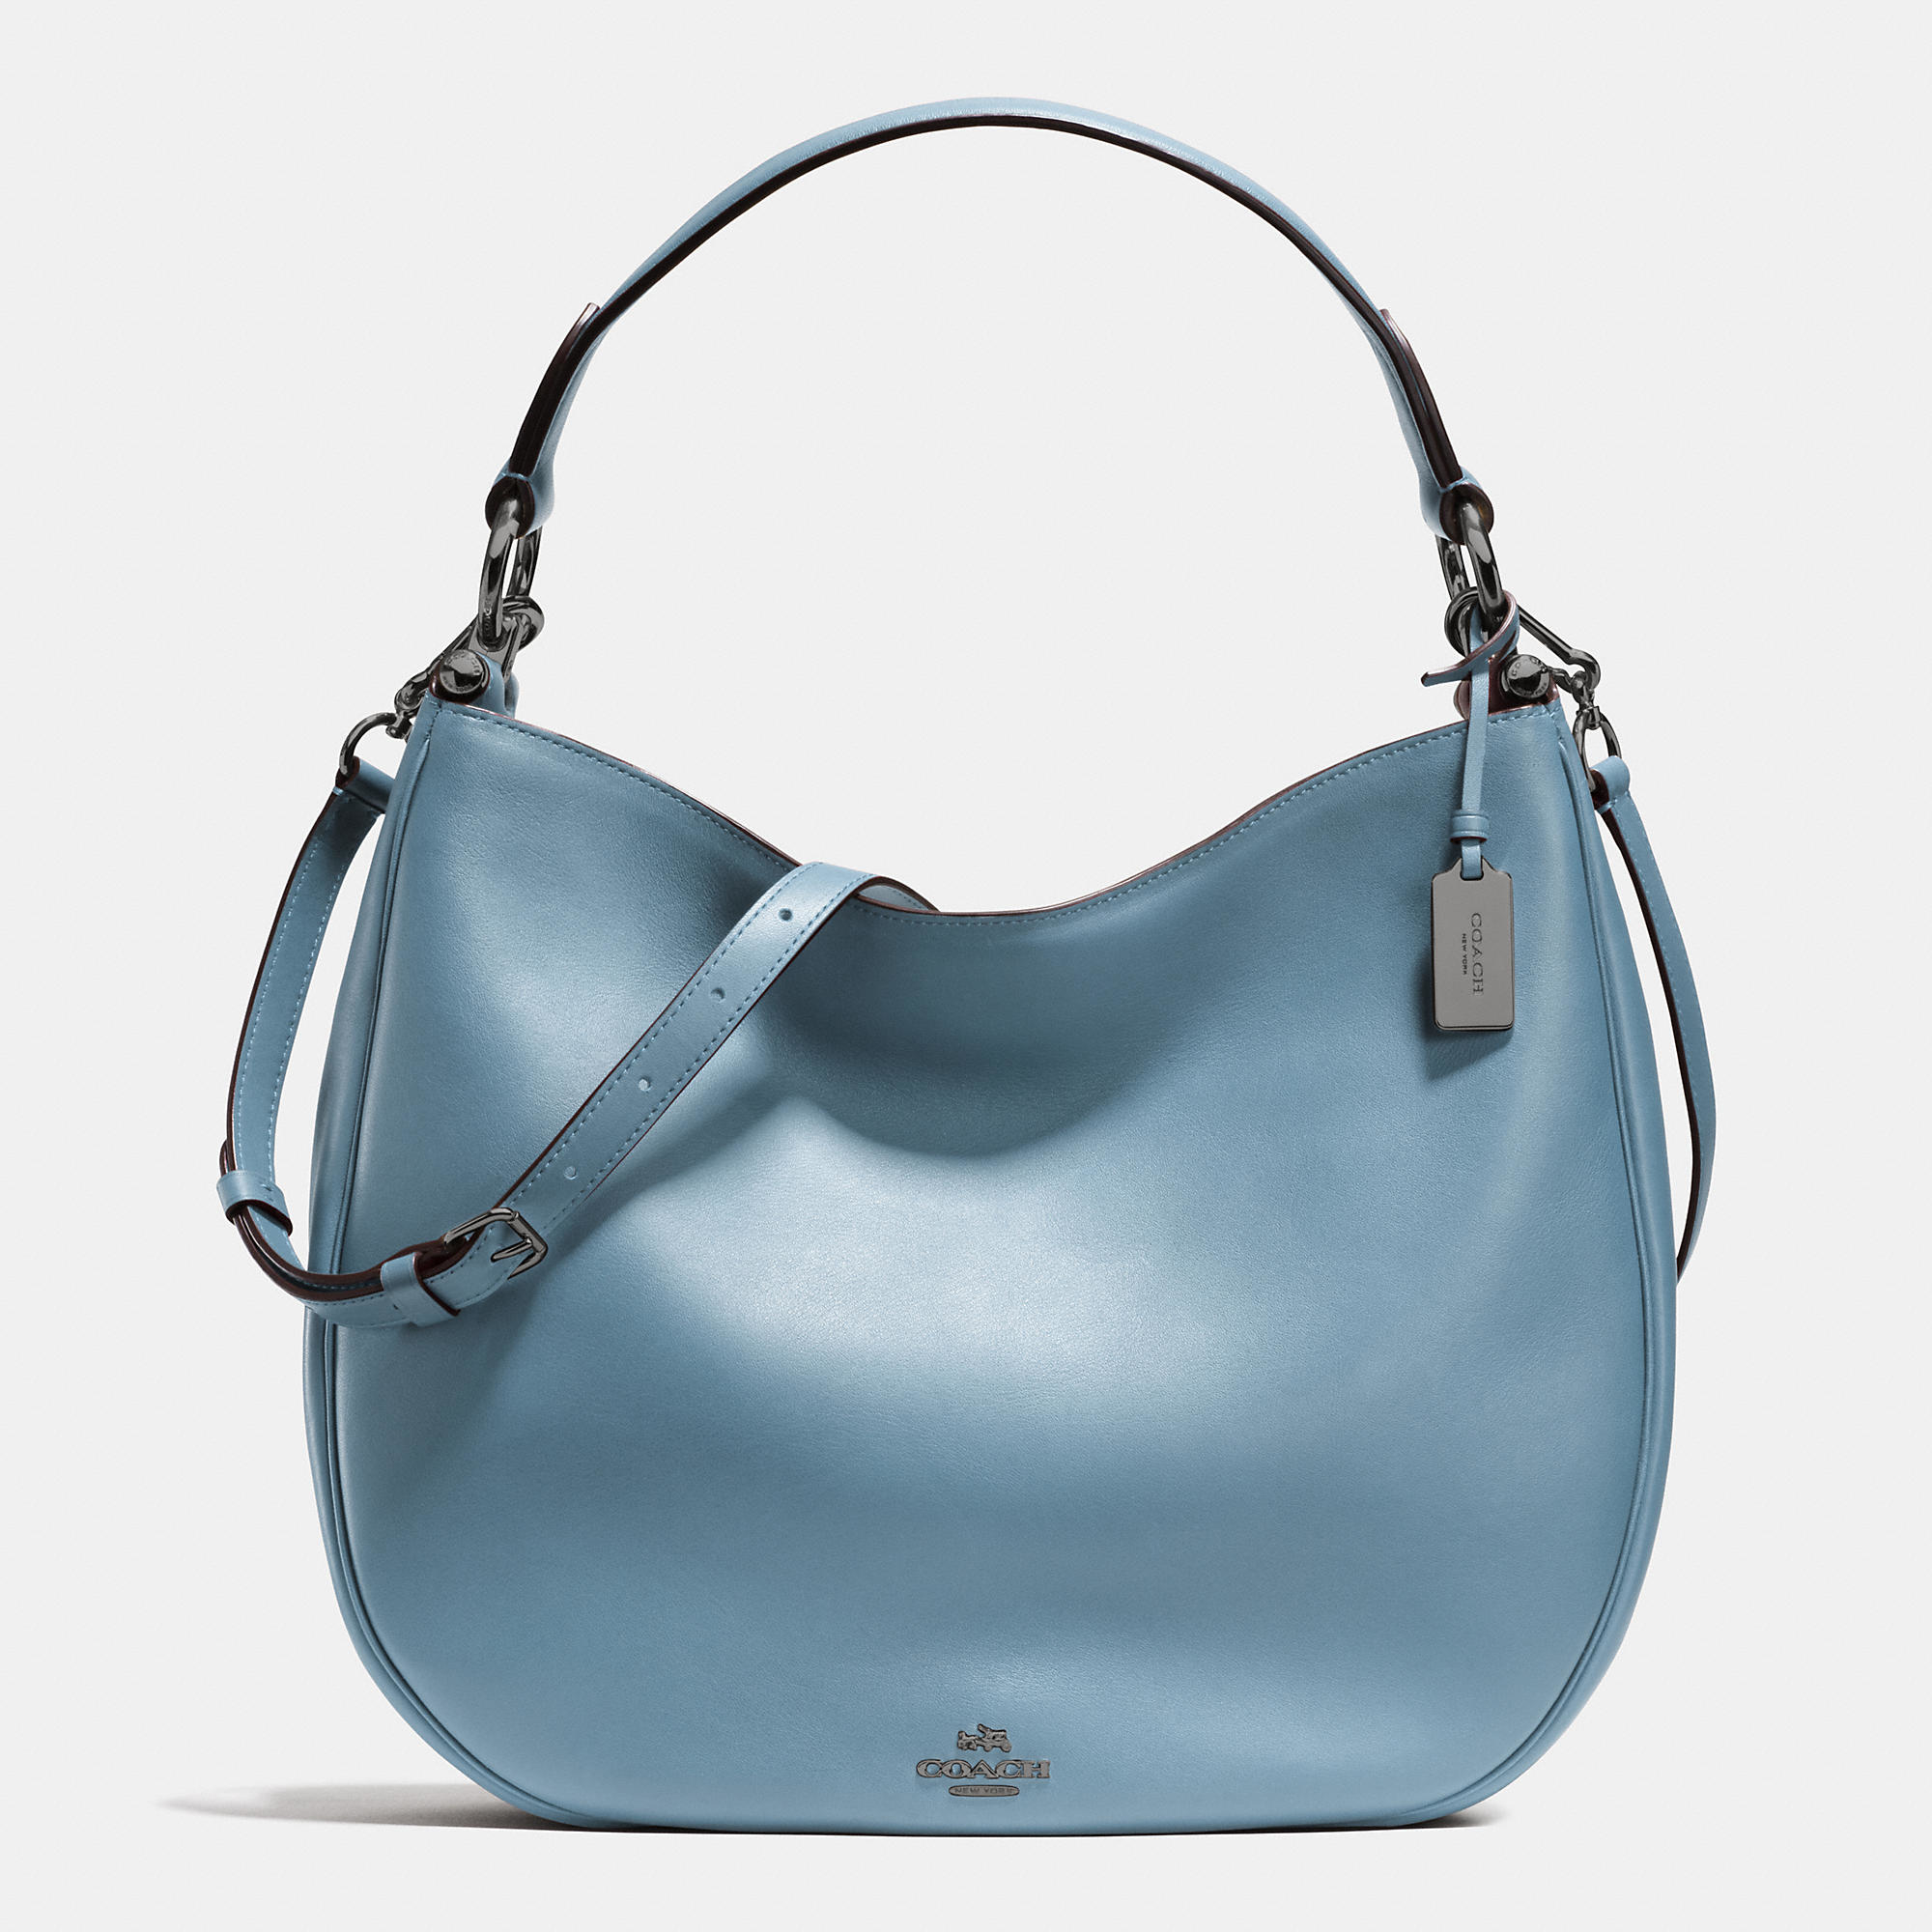 84f438aaf5c4 ... australia lyst coach nomad hobo in glovetanned leather in blue cc9c5  f021c